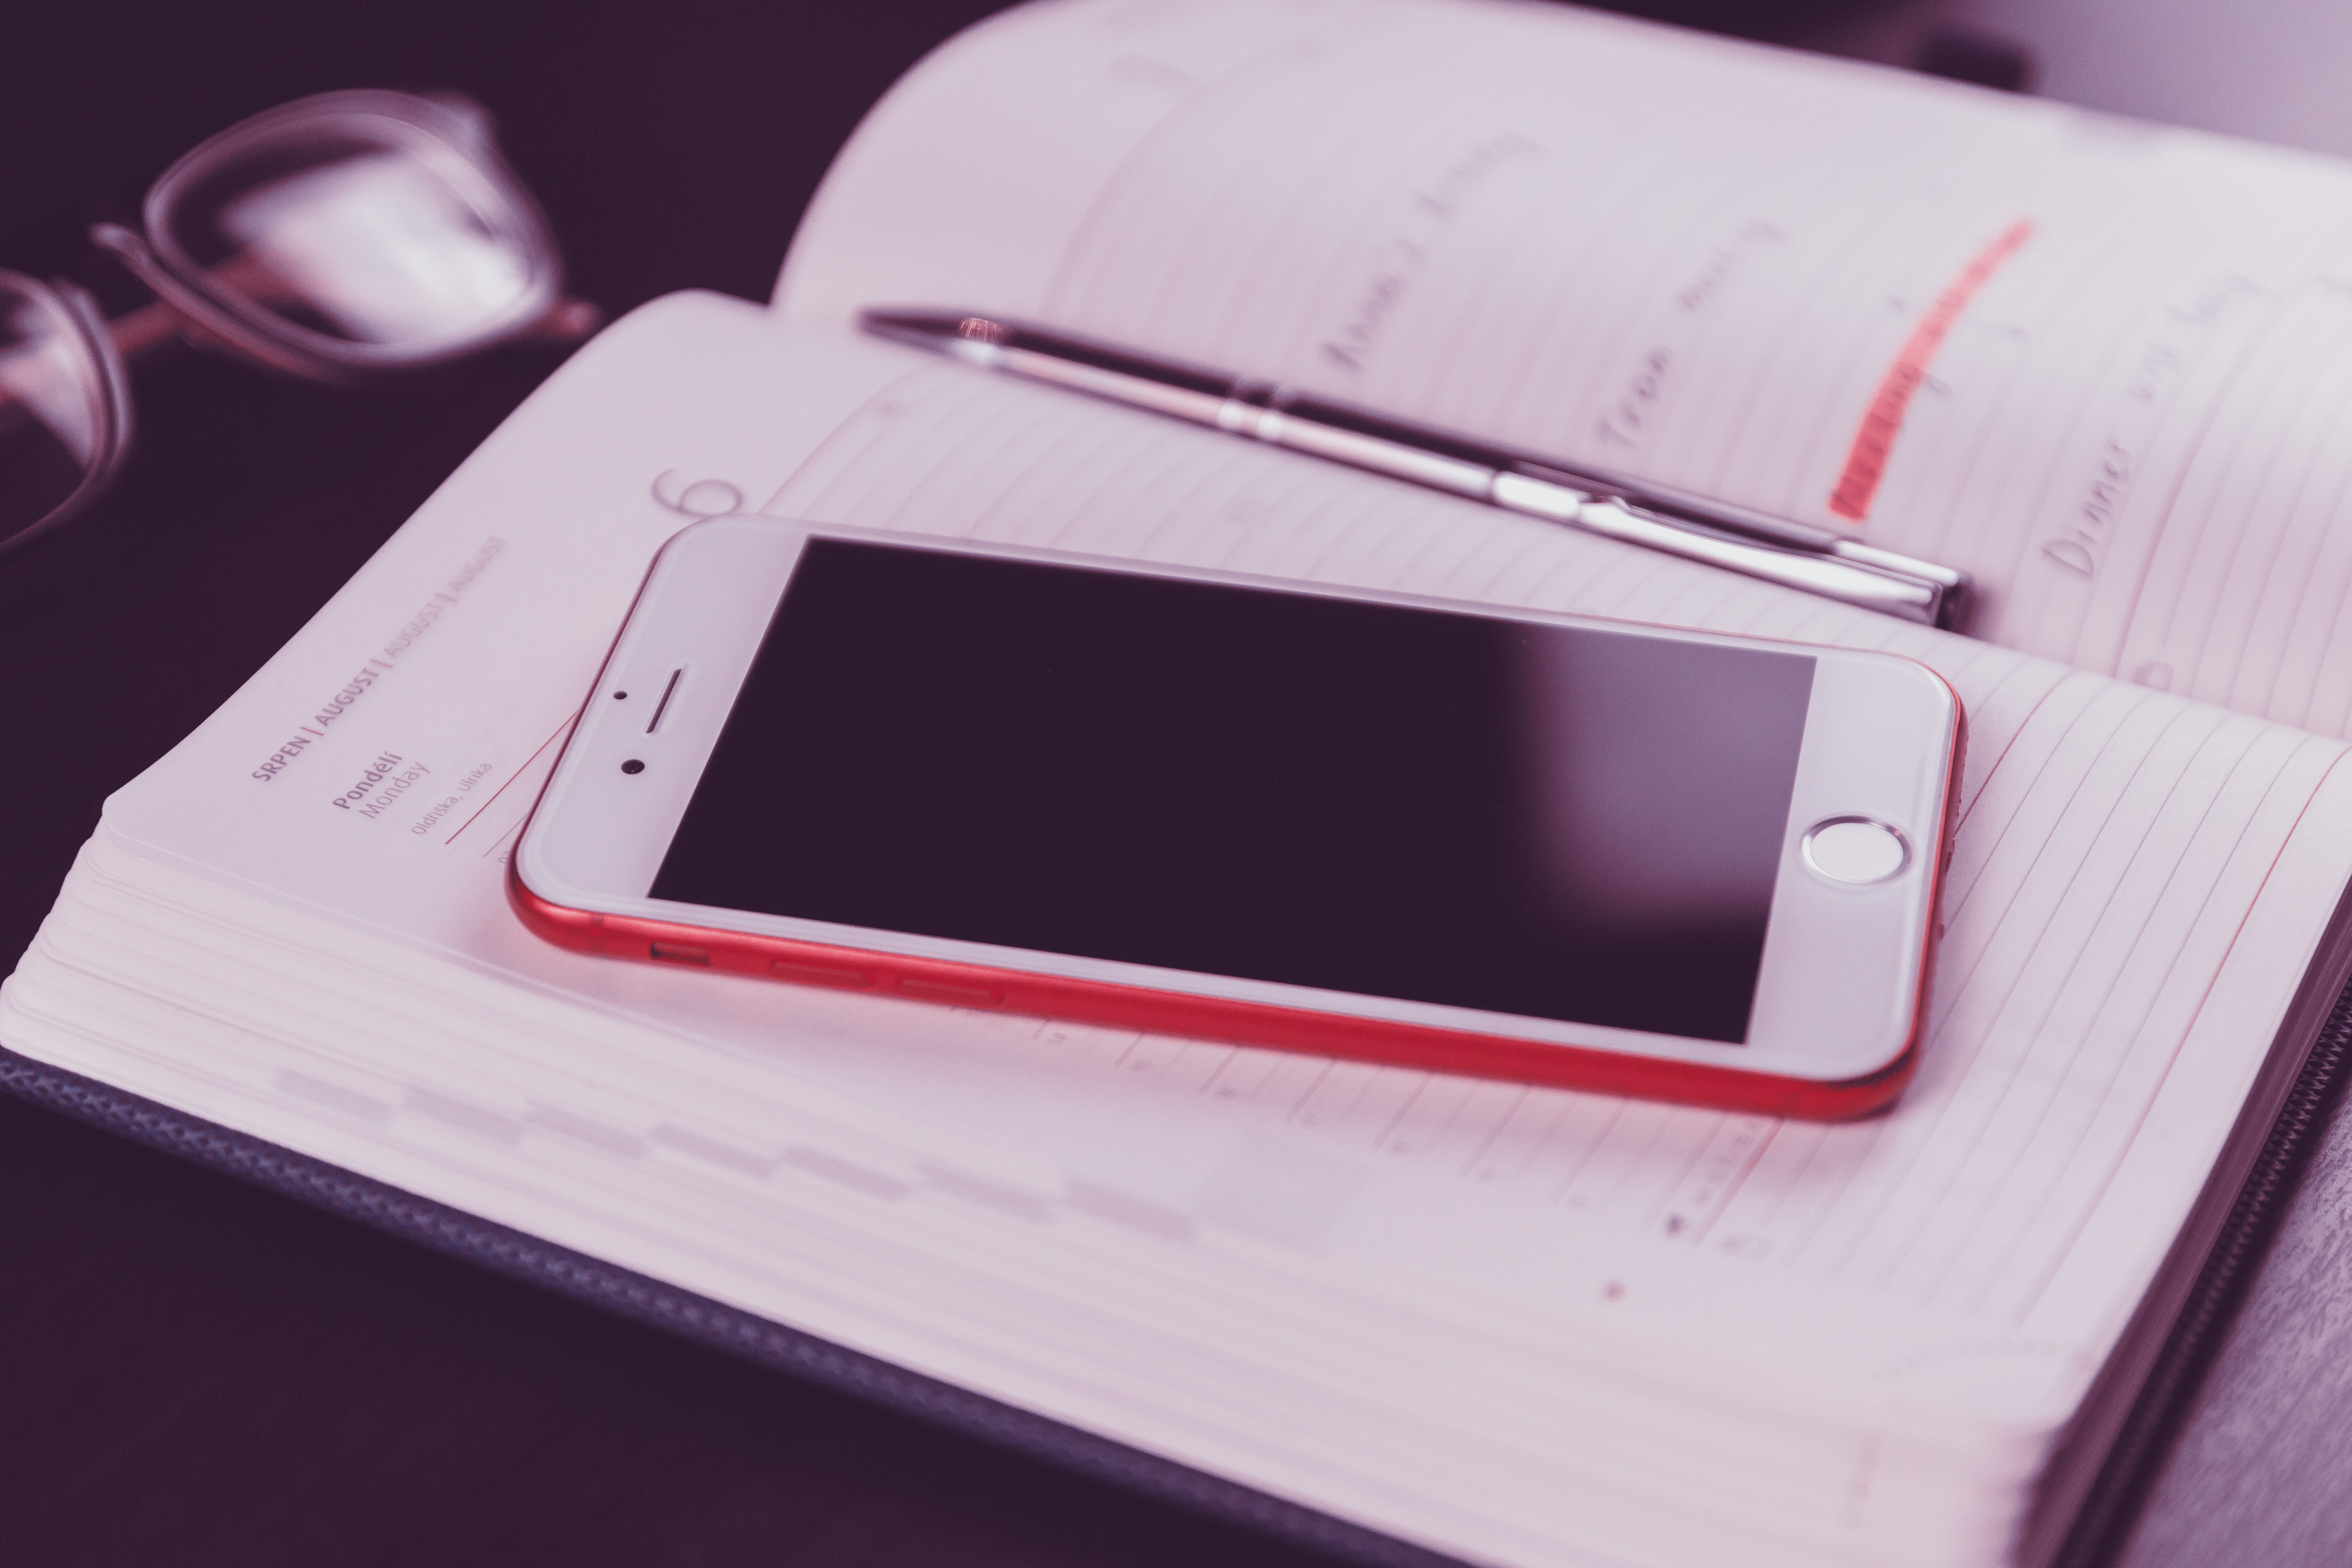 Red Iphone 7 on White Book Page, Black, Pen, Technology, Table, HQ Photo